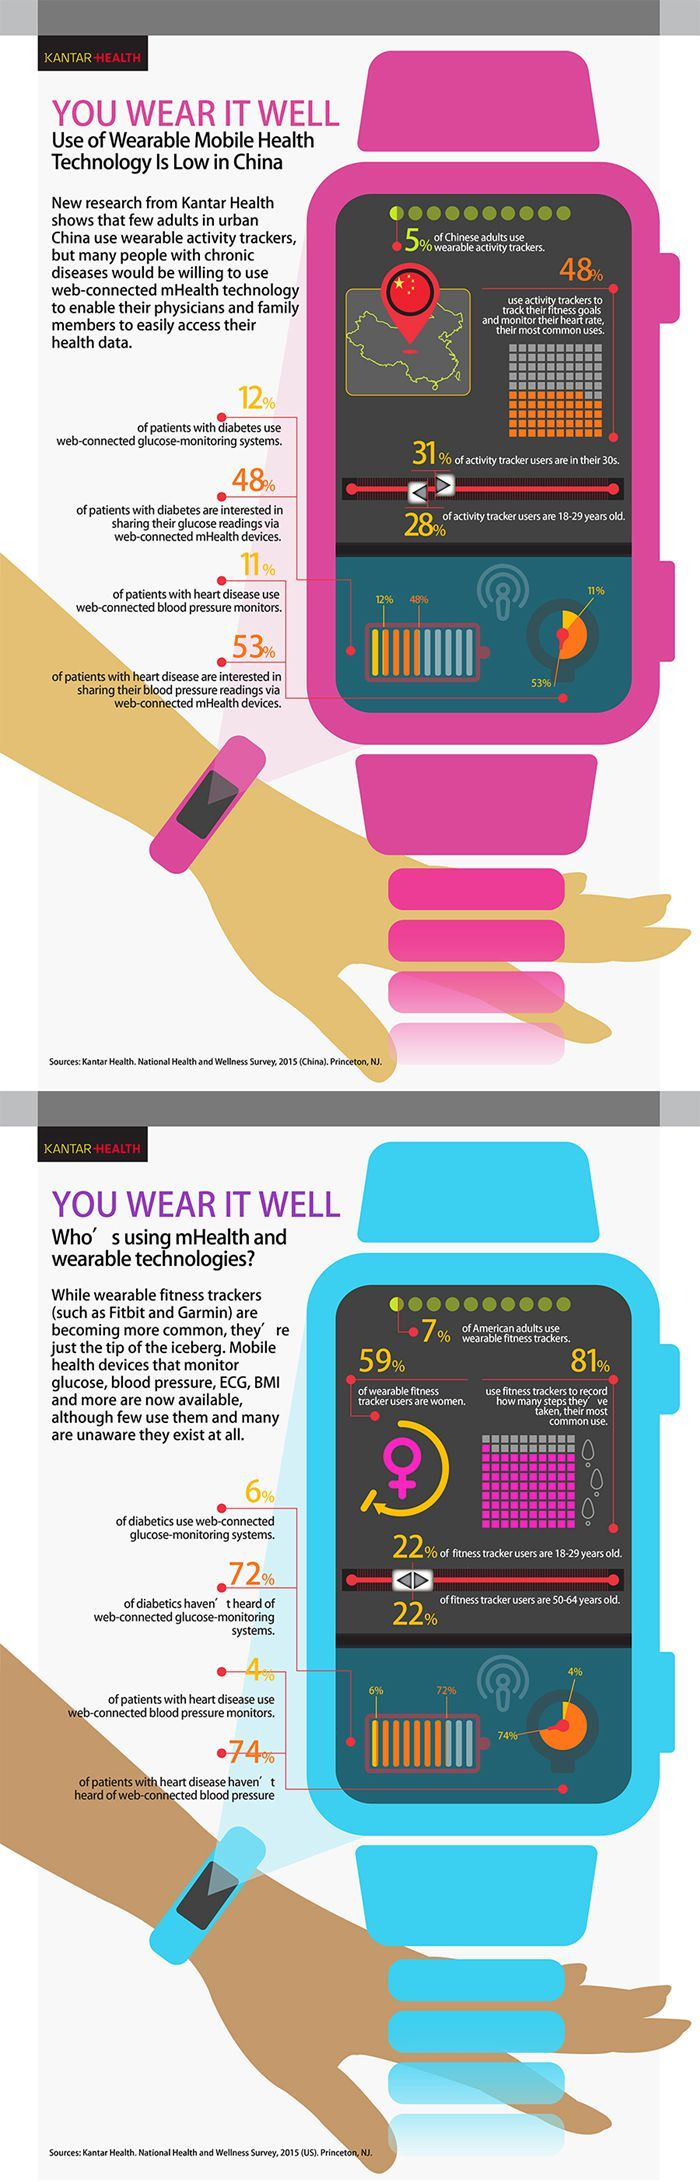 Wearable mobile health technology in China